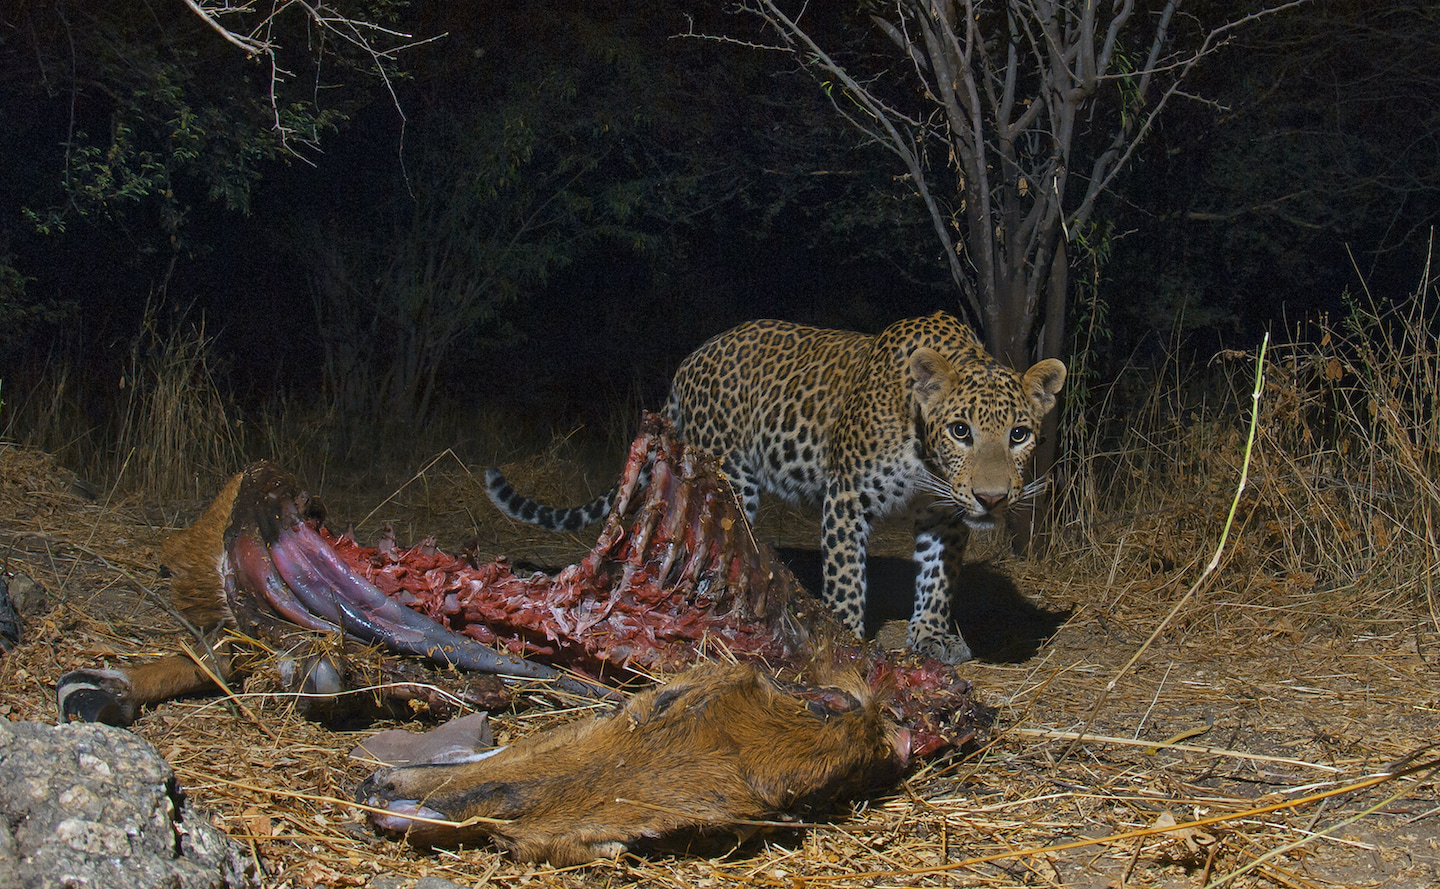 """The leopards in Bera do not rely on livestock for food, as evidenced by the presence of wild animal carcasses in the forests around the region. This image of a nilgai kill was taken inside a private piece of land, a little over ten acres in size, parts of which were cultivated. """"There is one hill on the property,"""" says Dhritiman, """"where some leopards live. I saw a total of four individuals there during my stay""""."""